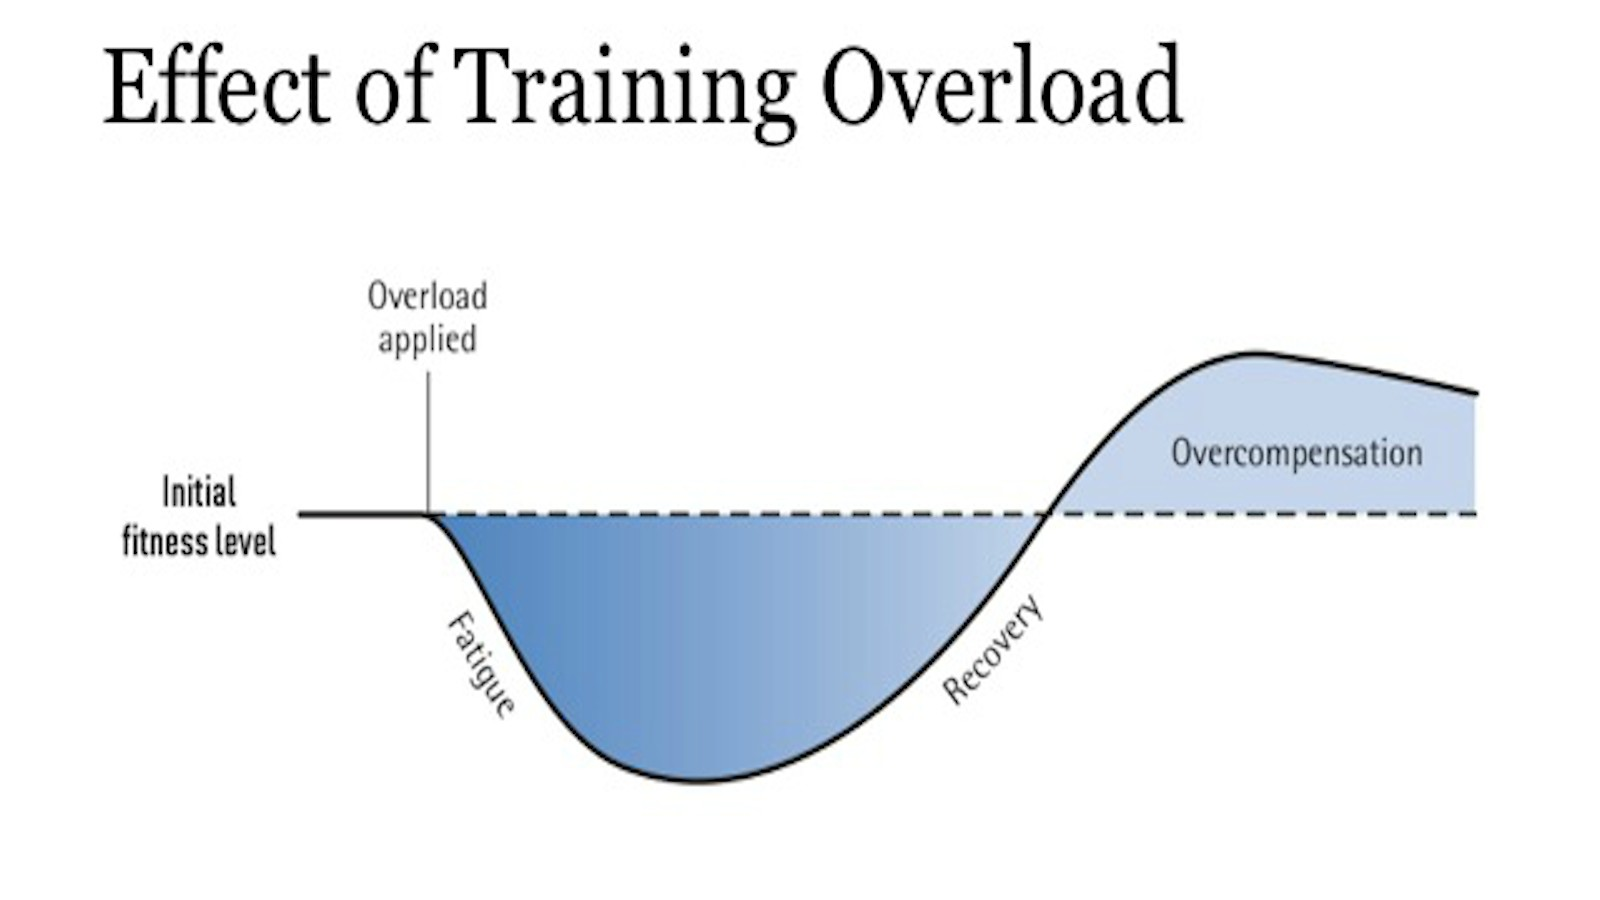 """""""This diagram shows the response to training load, how it affects fitness through fatigue, through which recovery then elicits a positive reaction resulting in a greater level of fitness"""""""